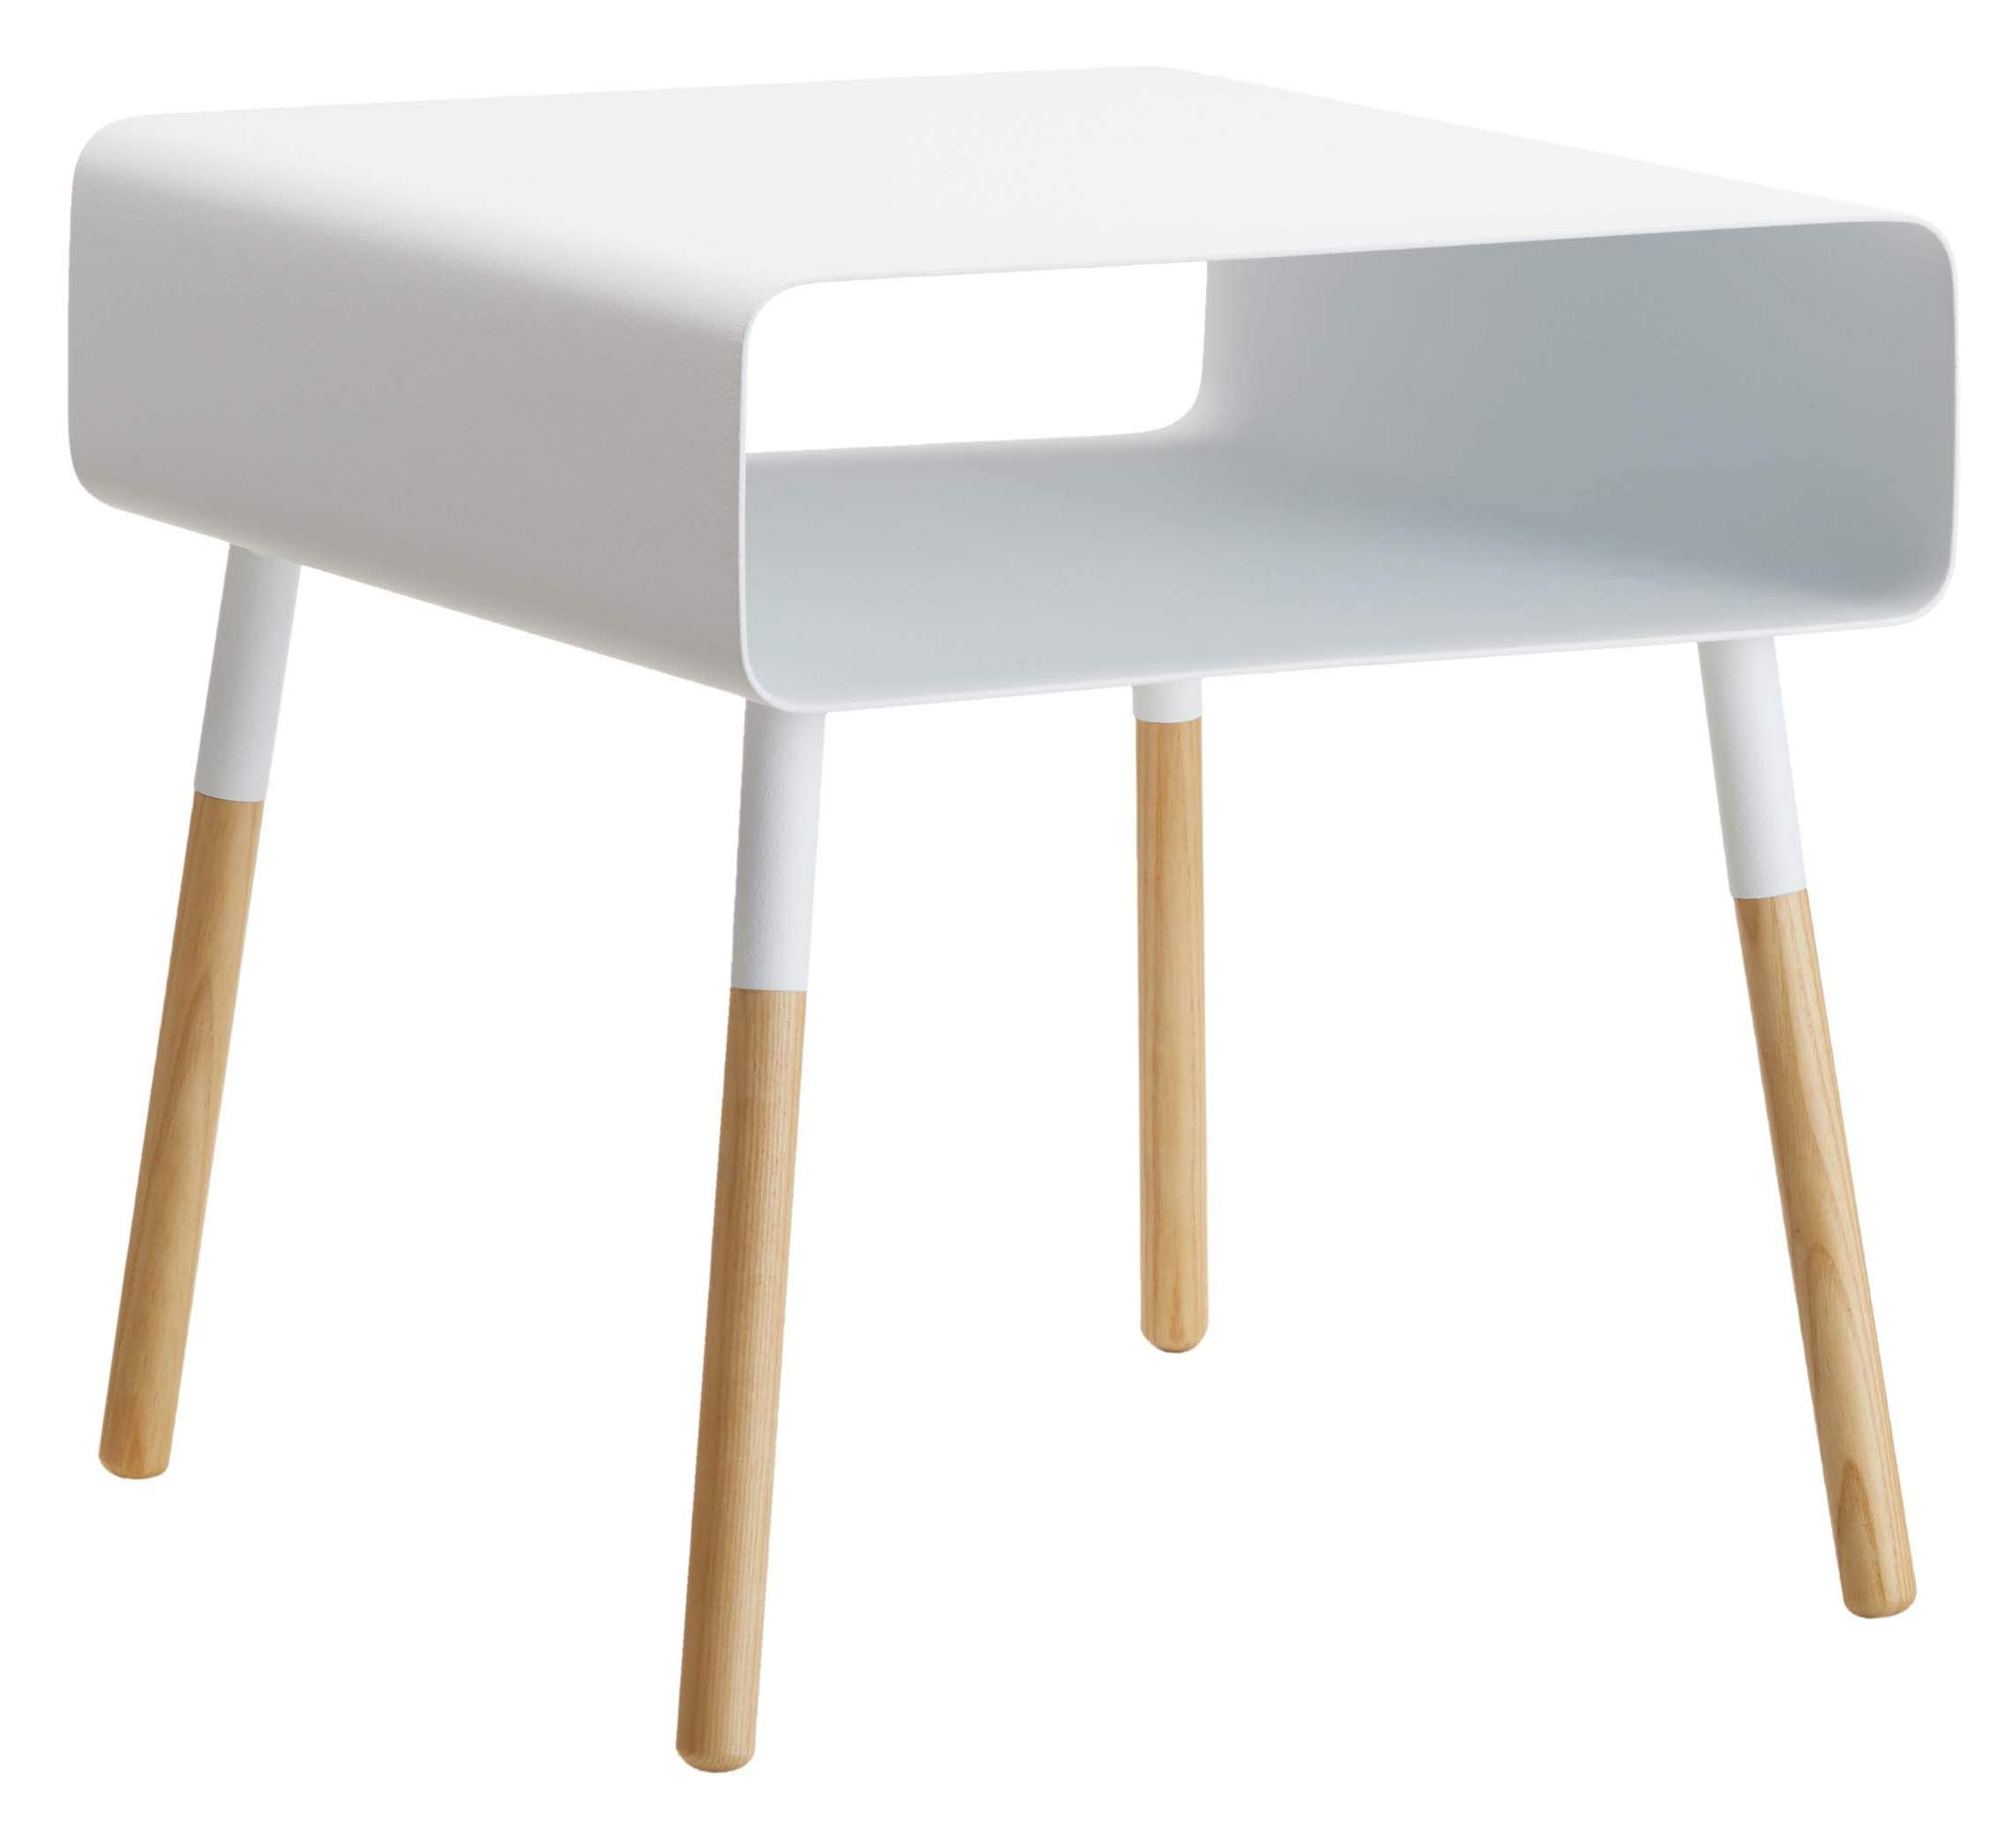 Red Co. Modern Minimalist Side Table with Storage Shelf, Wood & Steel, White Finish, 35 Inches by Red Co.